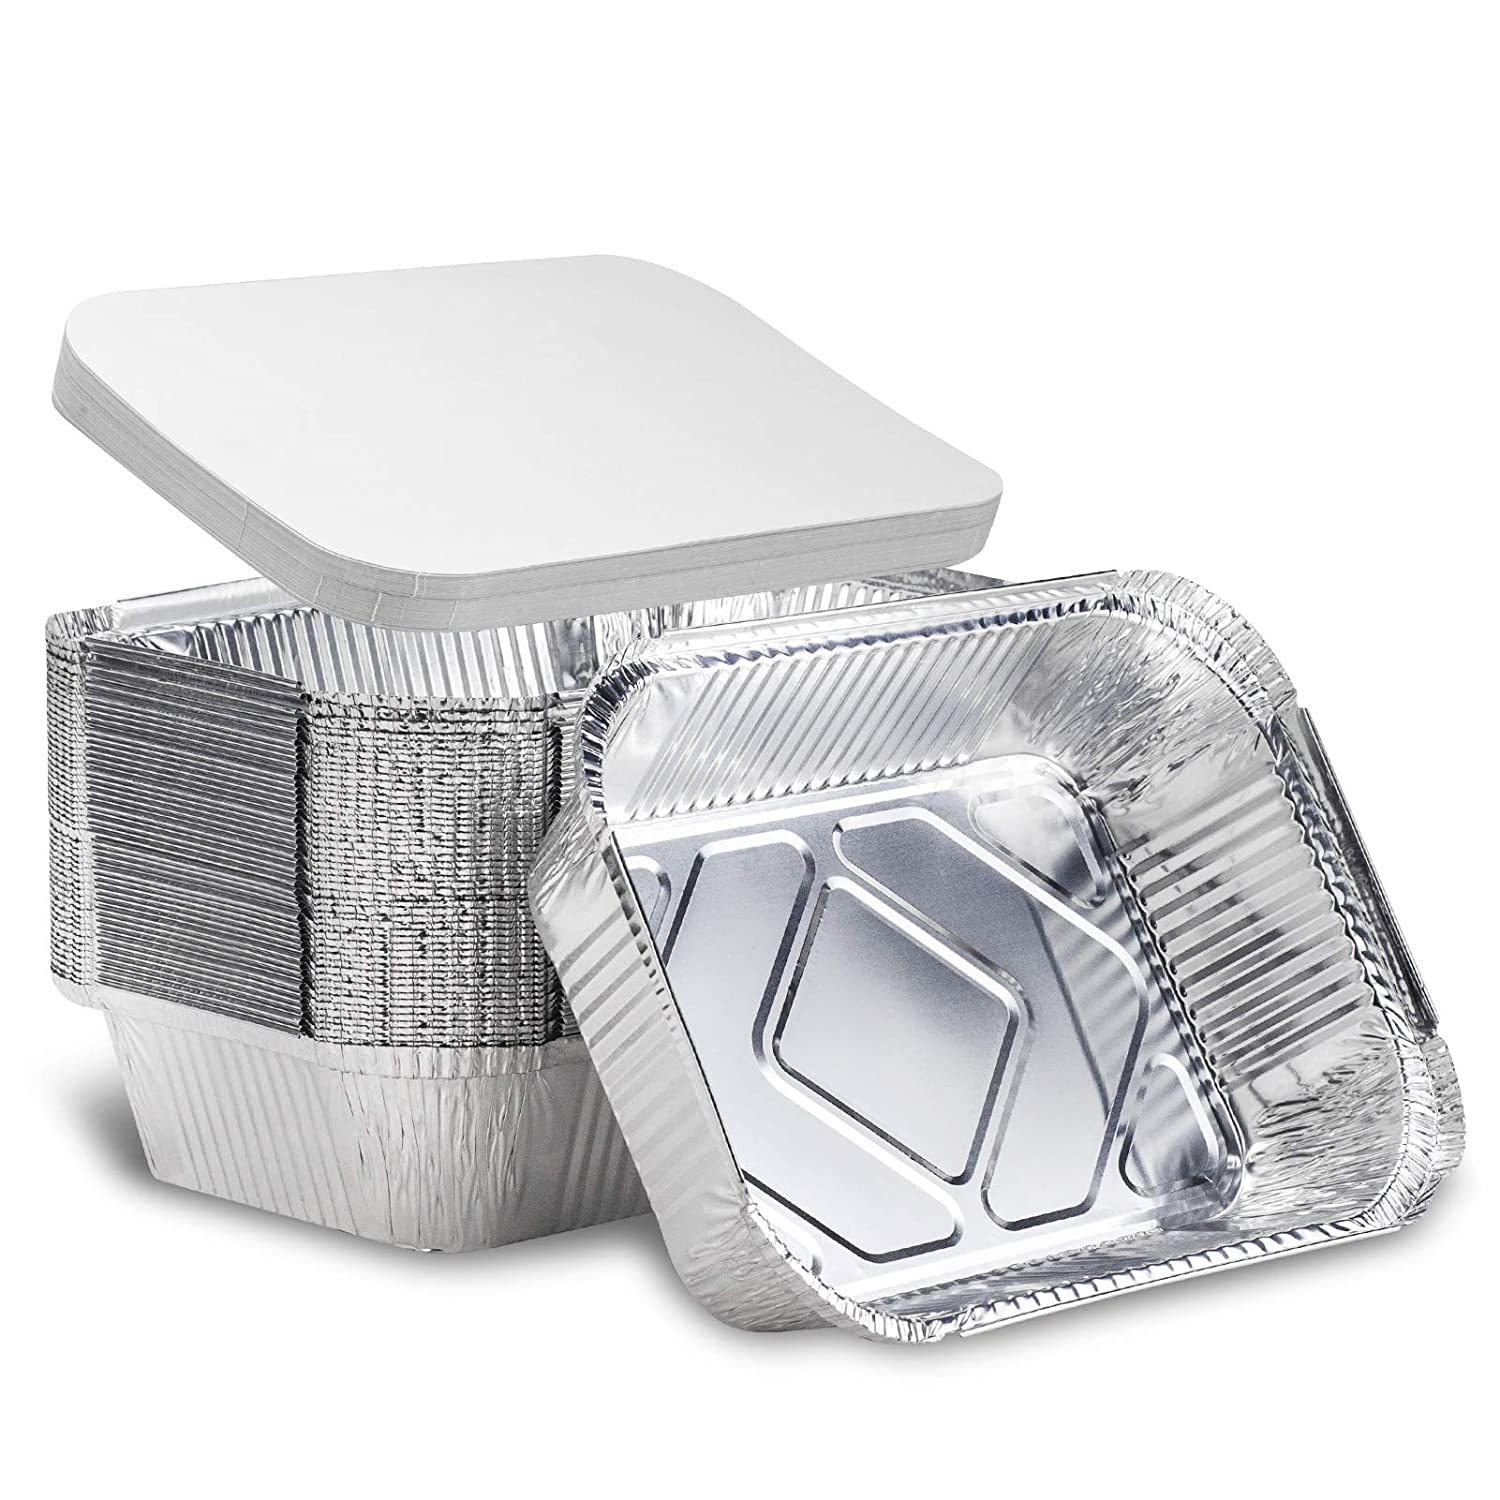 """5LB Foil Pan with Lid 10.5x7.5x2.5"""" Large Aluminum tin Pans with Covers dsposable Food containers Great for Baking Cooking Heating Storing Prepping Food by lsshao"""